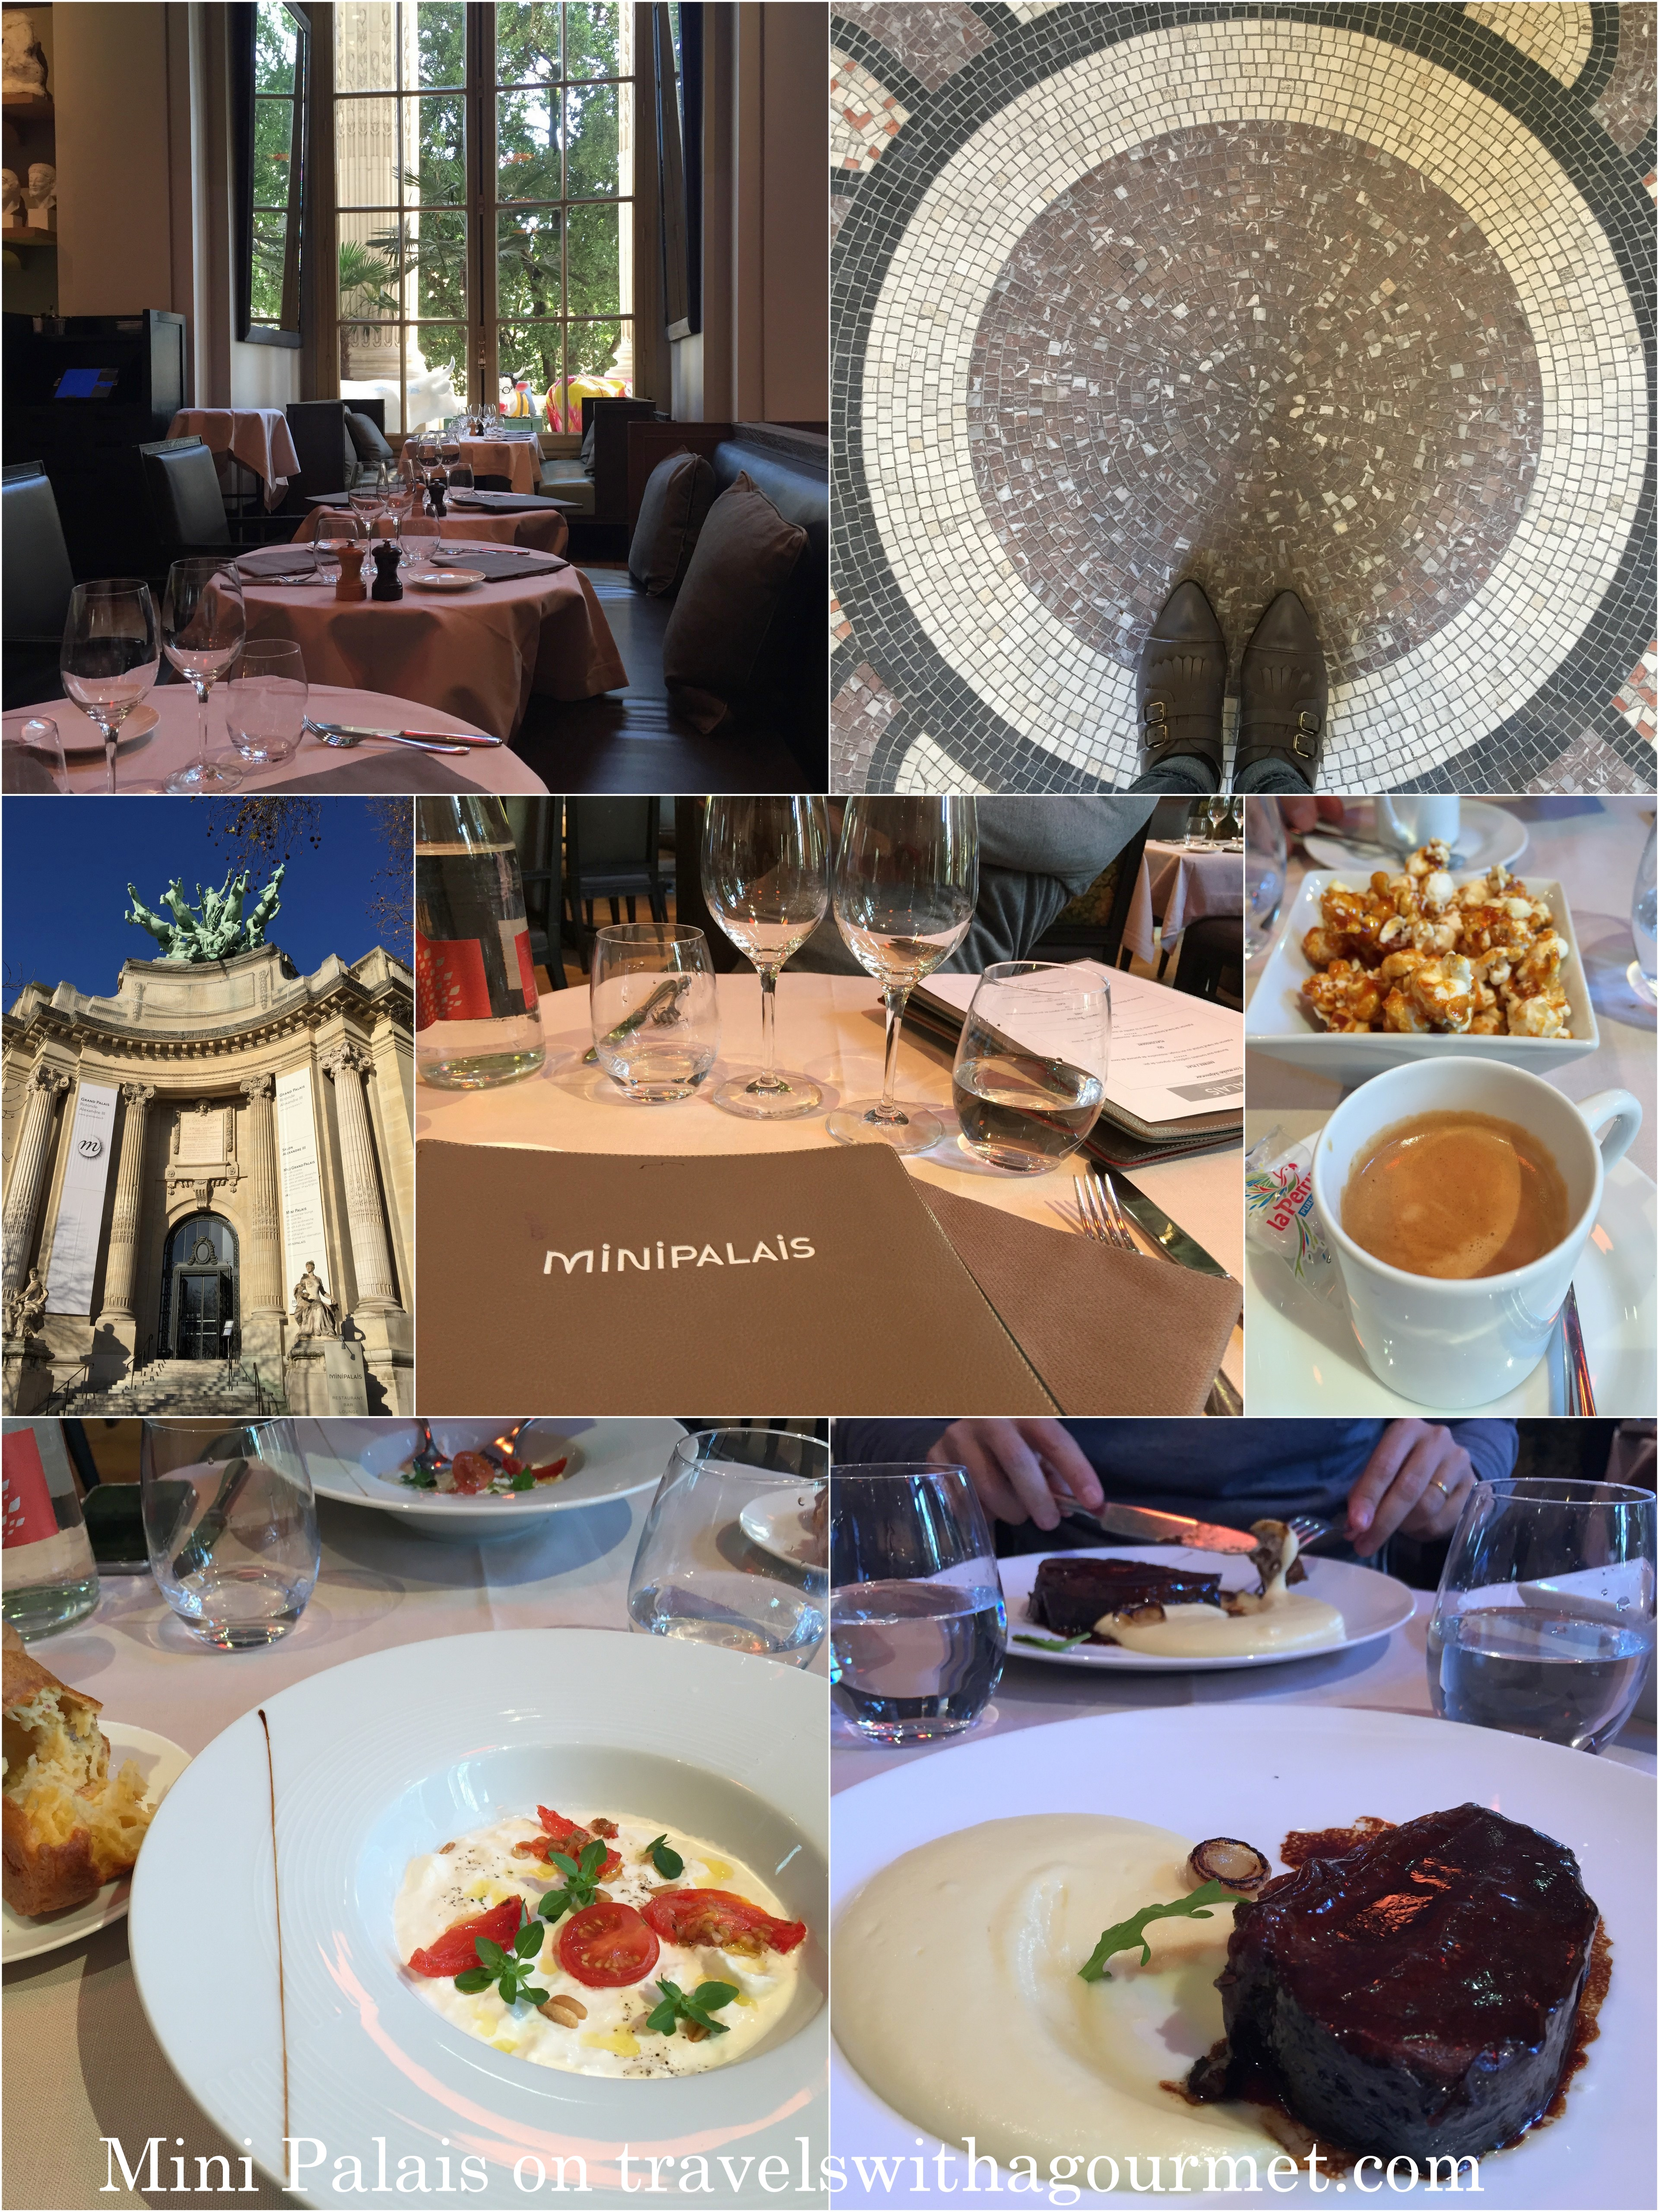 Flashback Friday Mini Palais Travels With A Gourmet